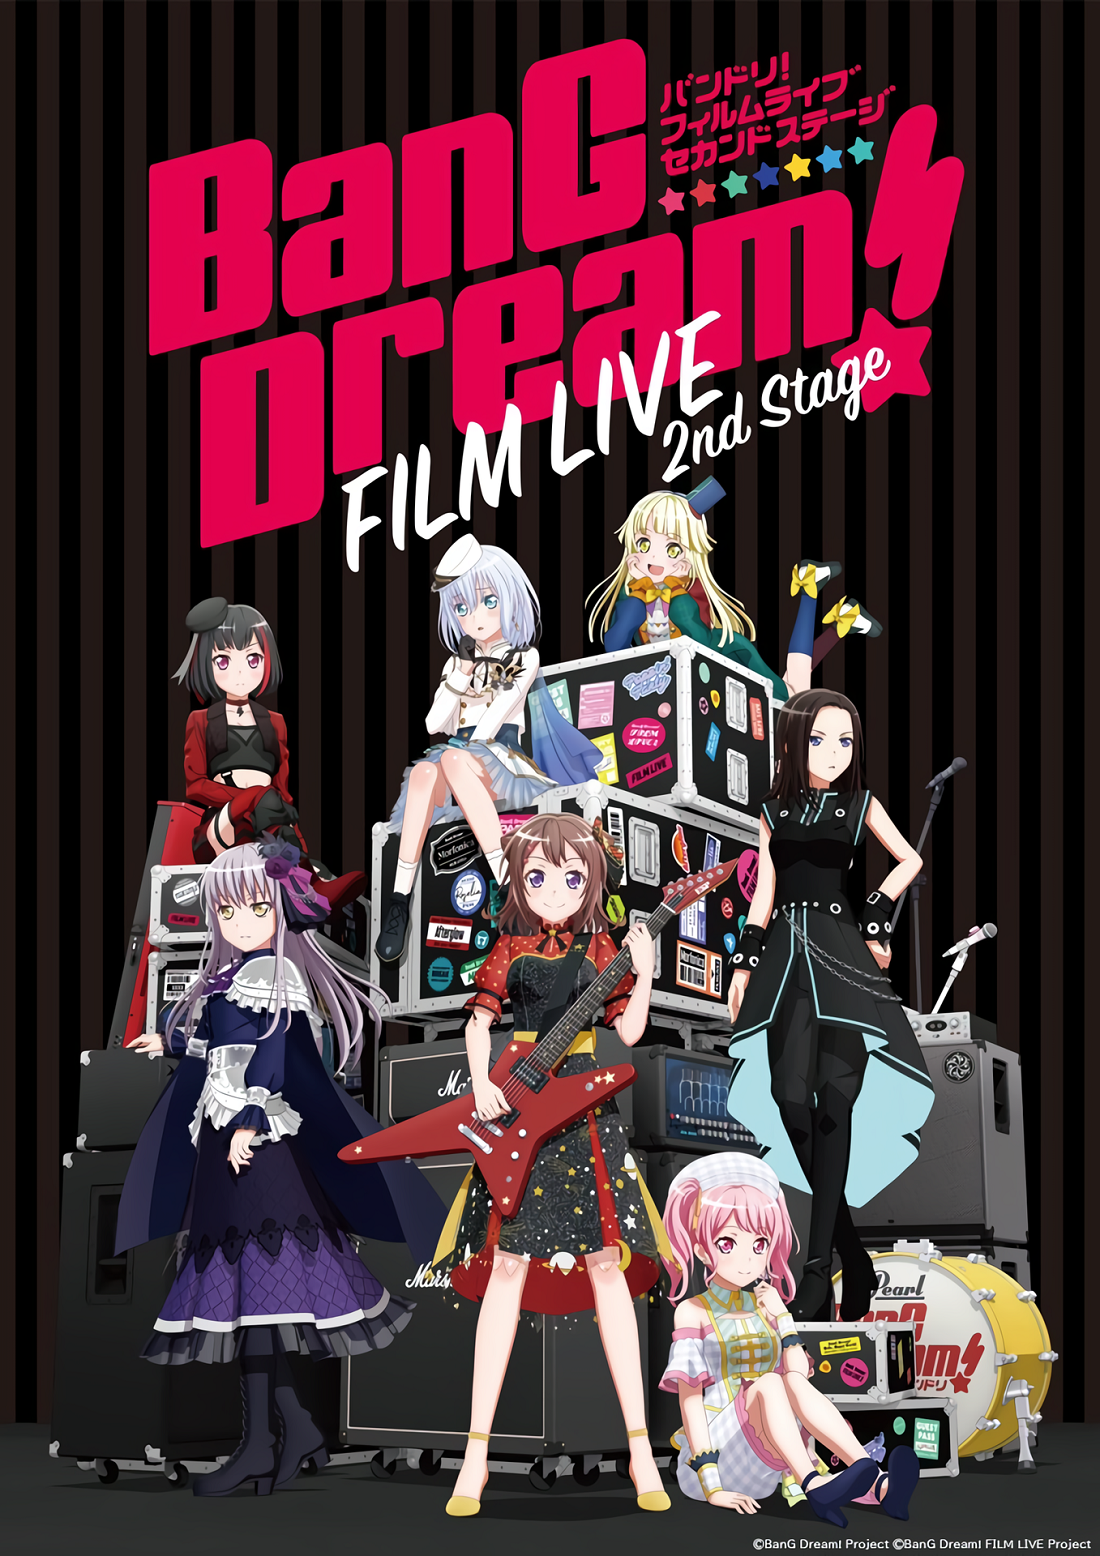 BanG Dream!: Film Live 2